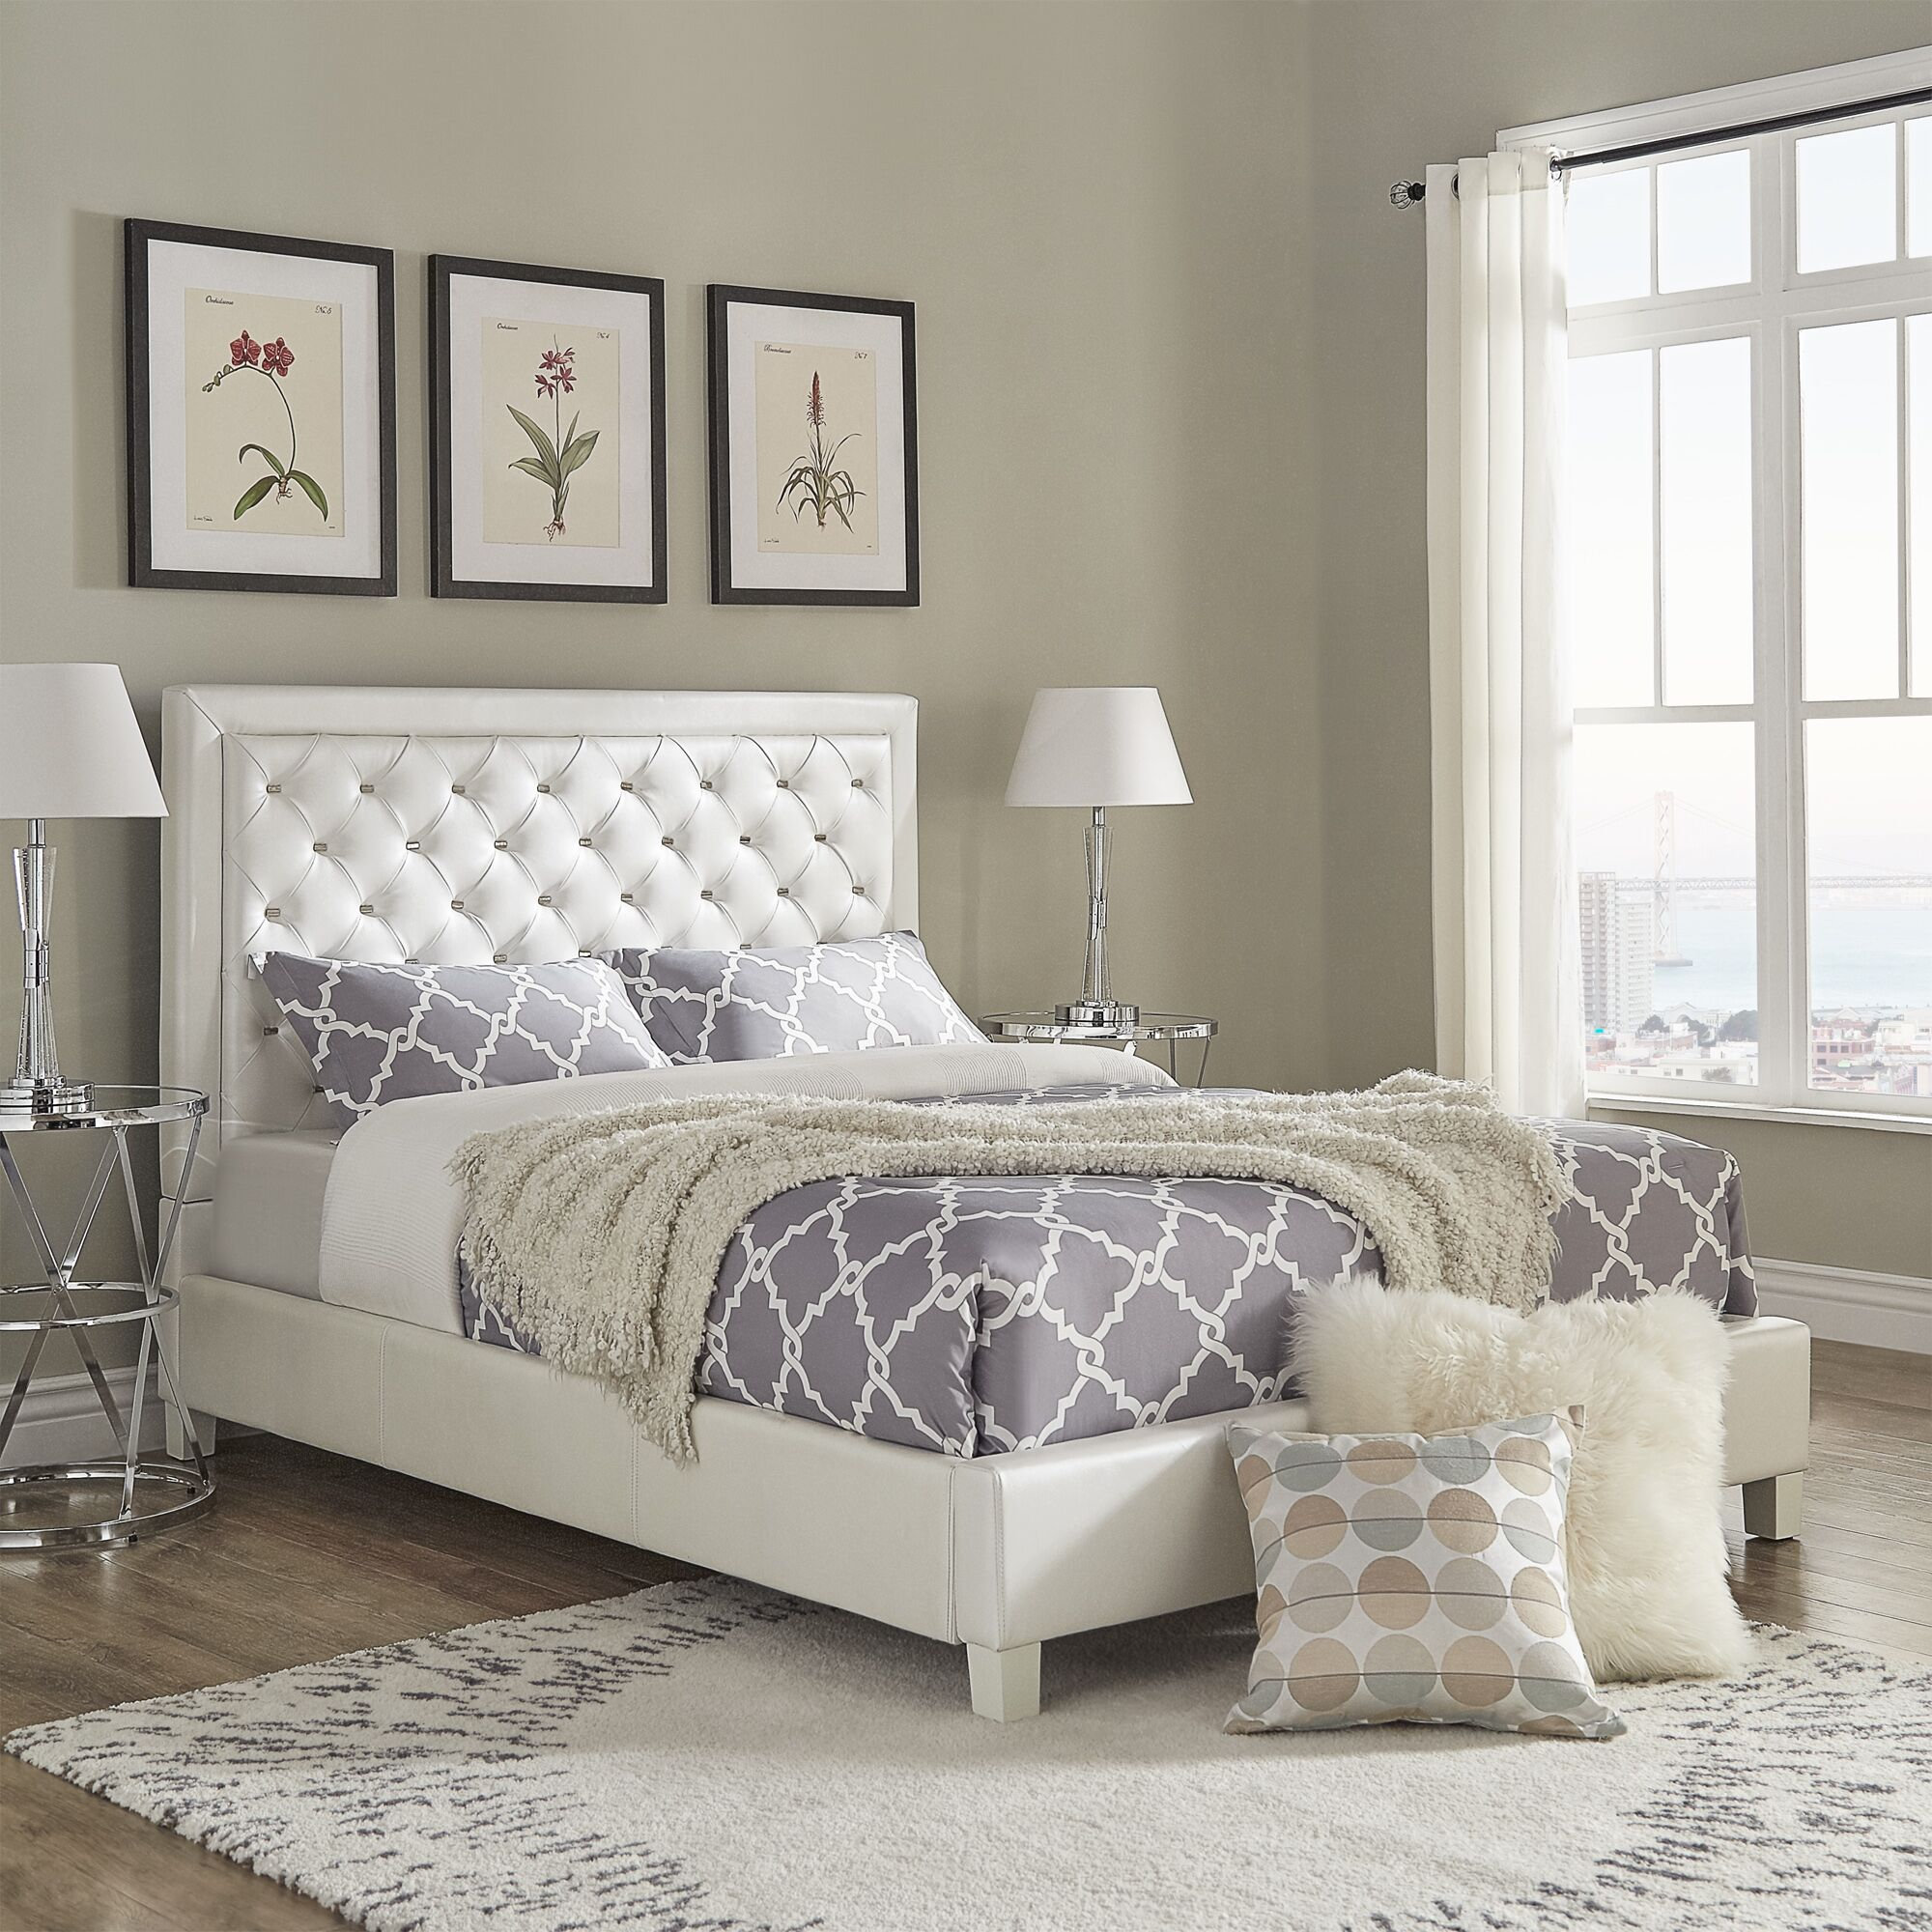 Caledonia Upholstered Panel Bed Size: Full, Color: Silver/Gray